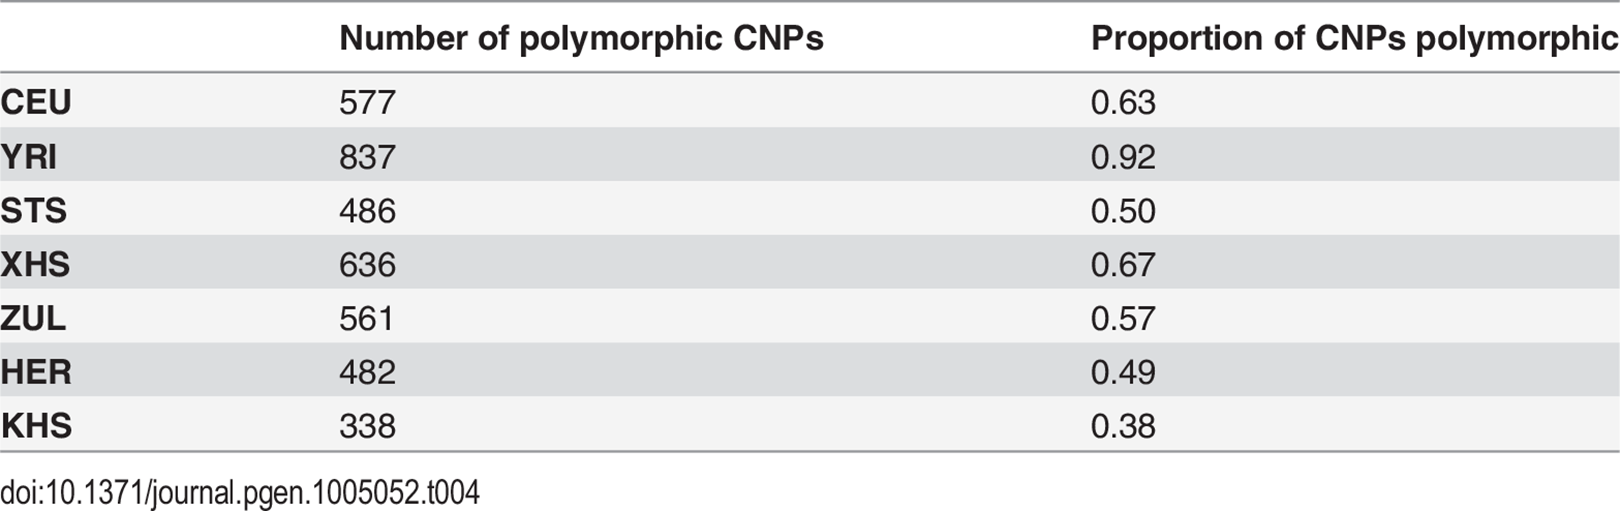 Number of known copy number polymorphisms (of a total of 1130 autosomal CNPs) that are polymorphic in each analysis panel.